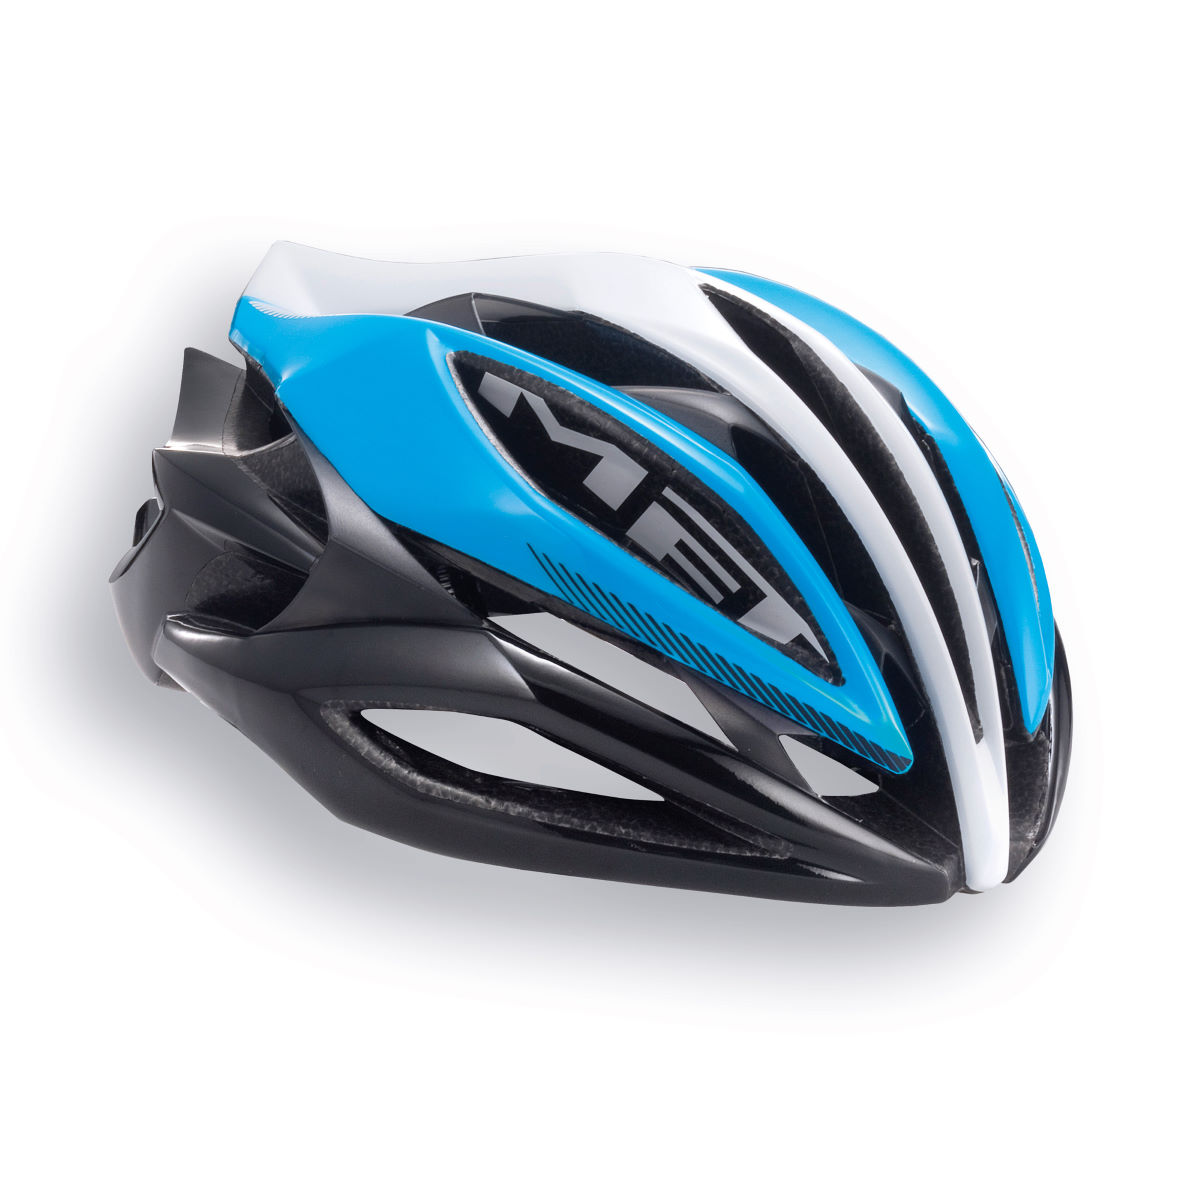 met sine thesis road helmet - 2011 Home protection helmets & hats road helmets road helmets stay safe and look the part with a well fitted and breathable road cycling helmet from quality brands including giro, specialized, bell, mavic and poc.